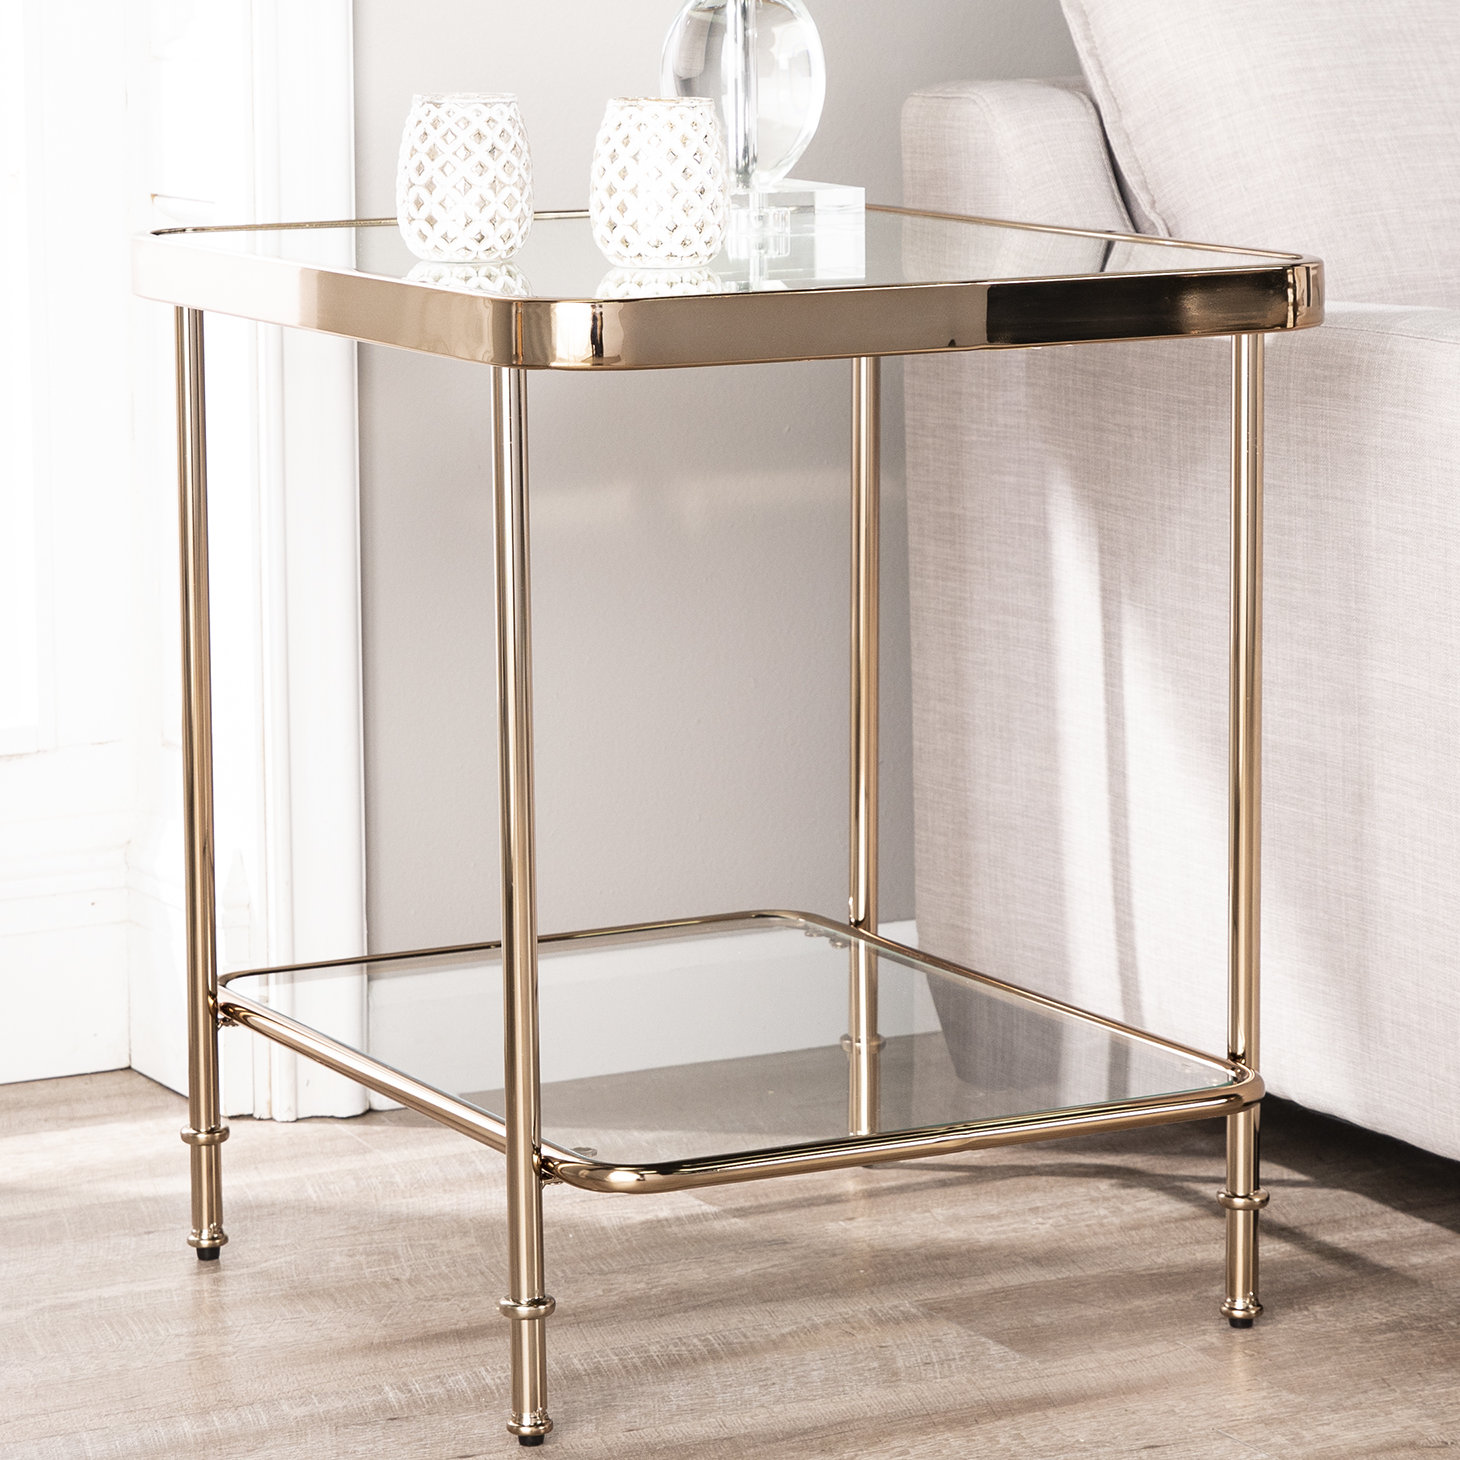 champagne mirrored end table kimberlin antique gold faceted accent with glass top stand large metal coffee green bedside lamps west elm lamp shades barn door corner brass and side